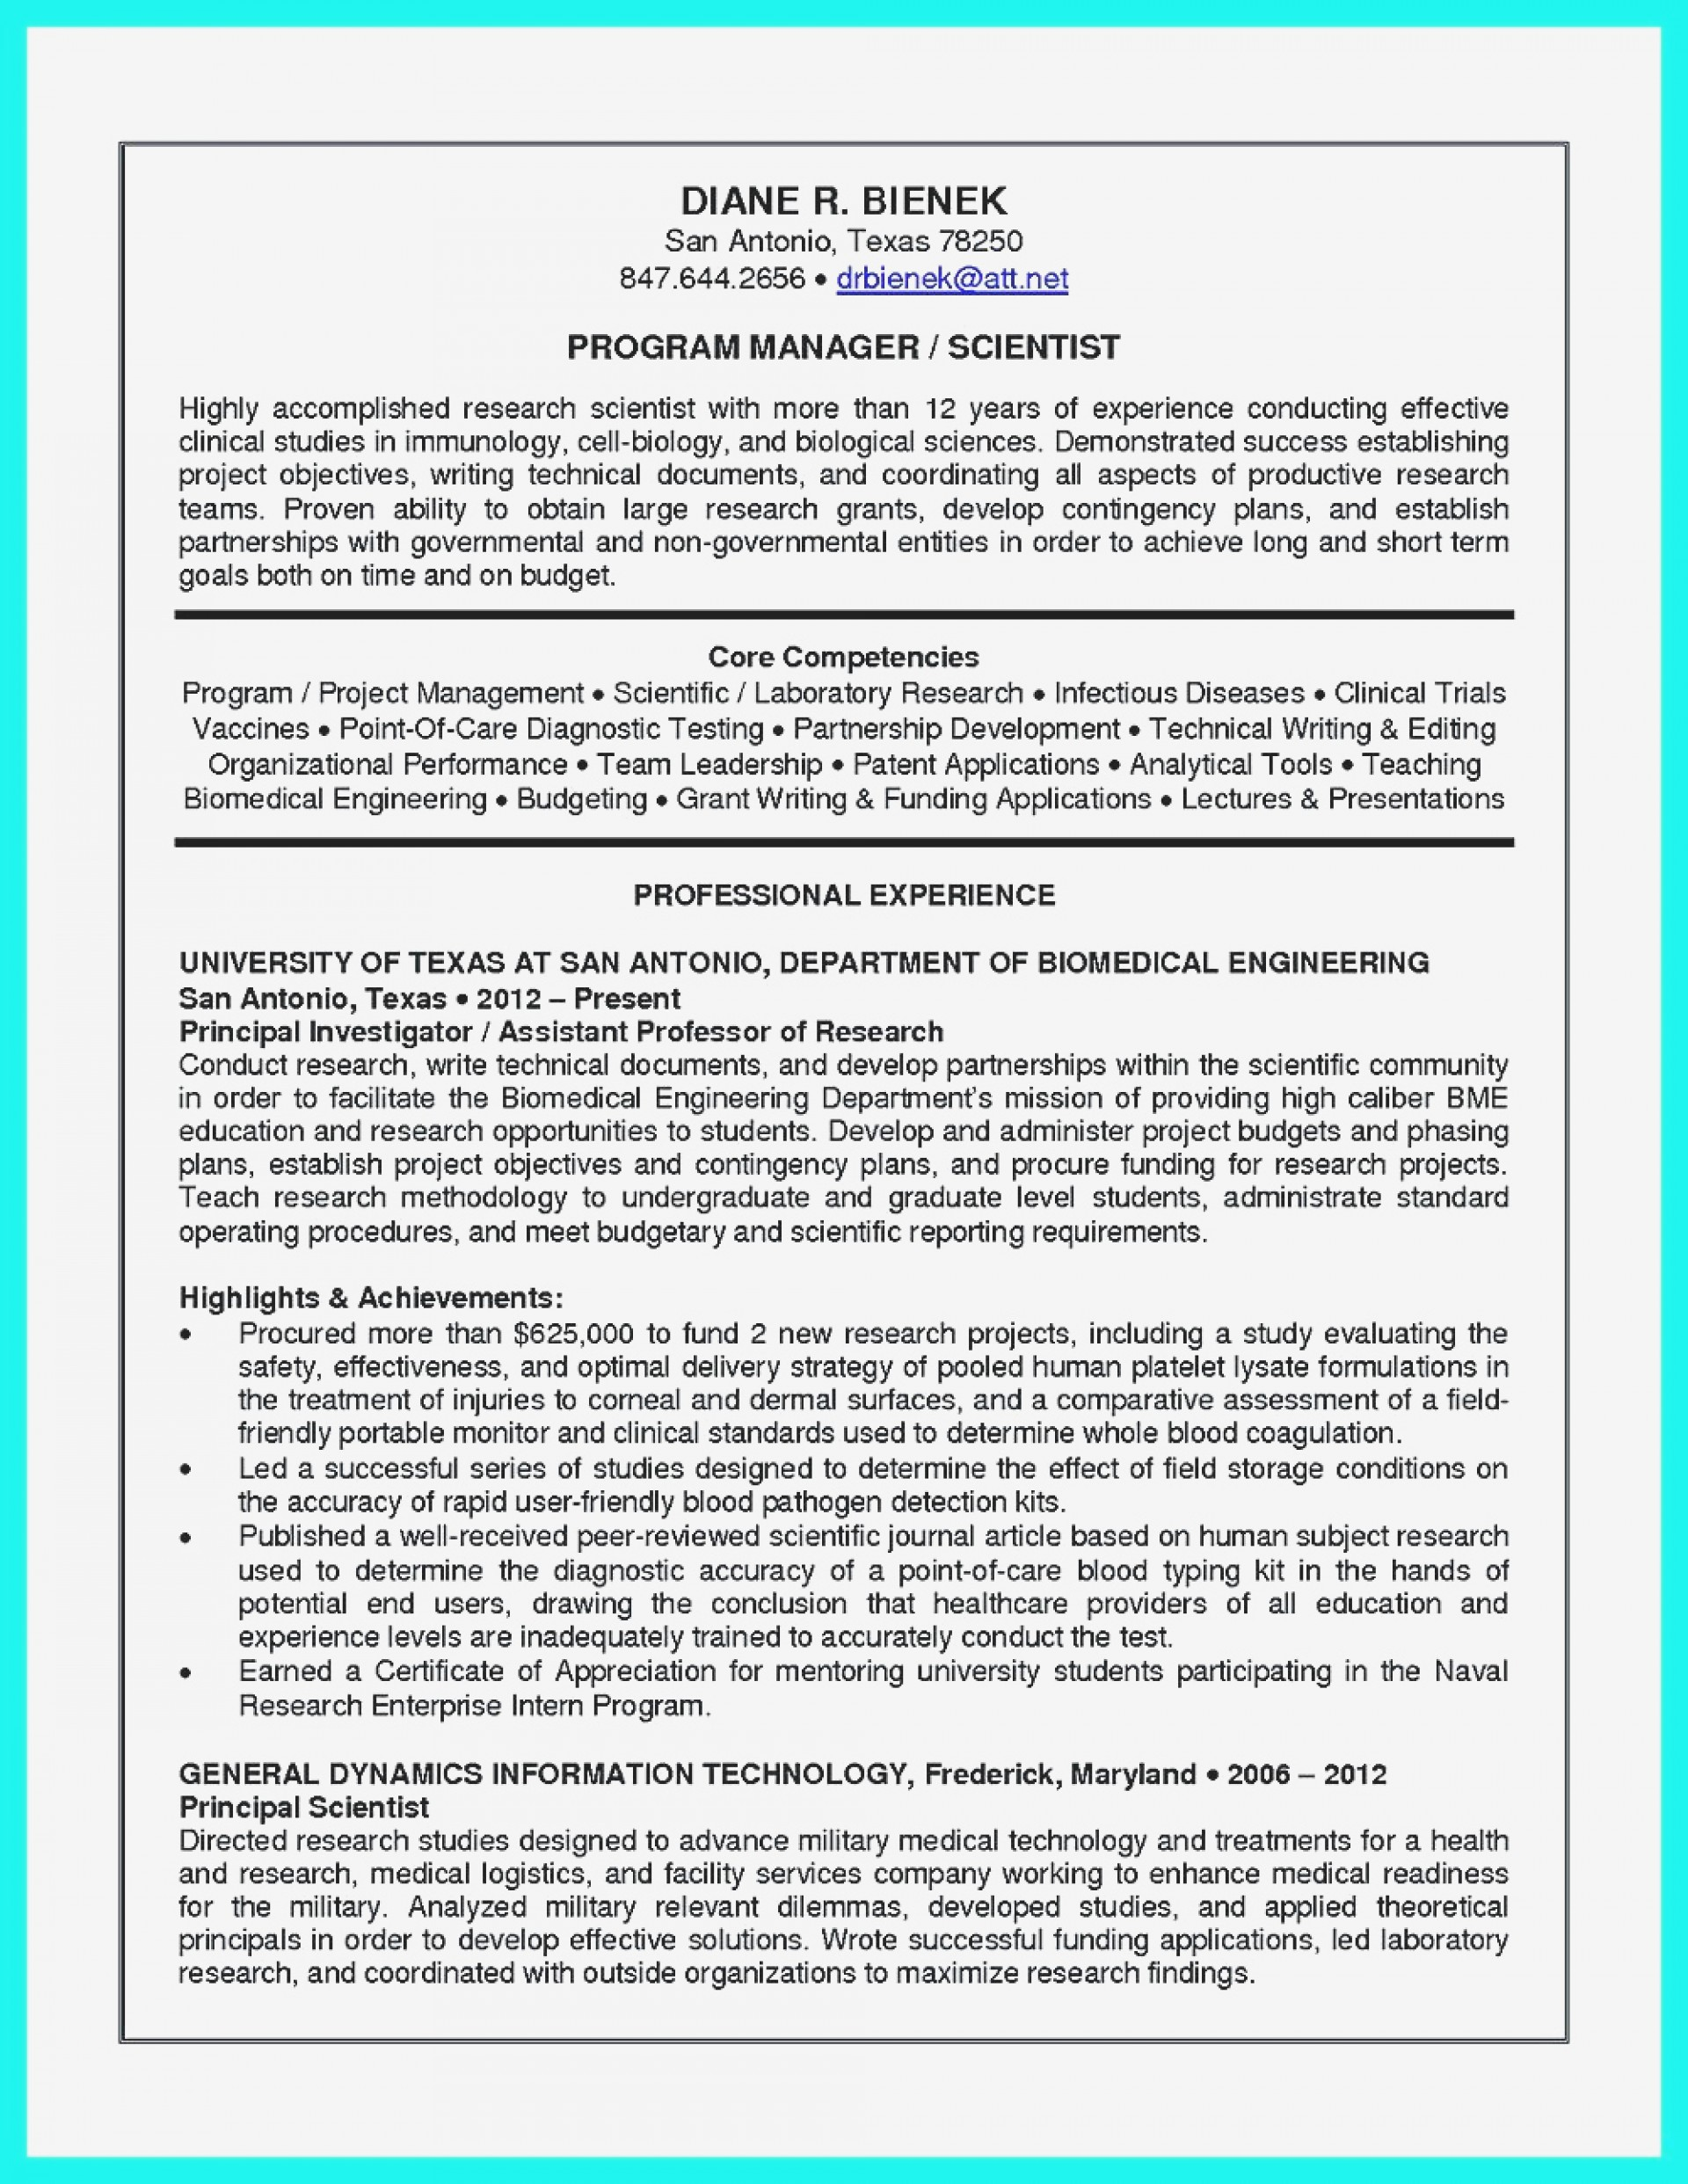 014 Medical Technology Research Paper Sample Clinical Associate